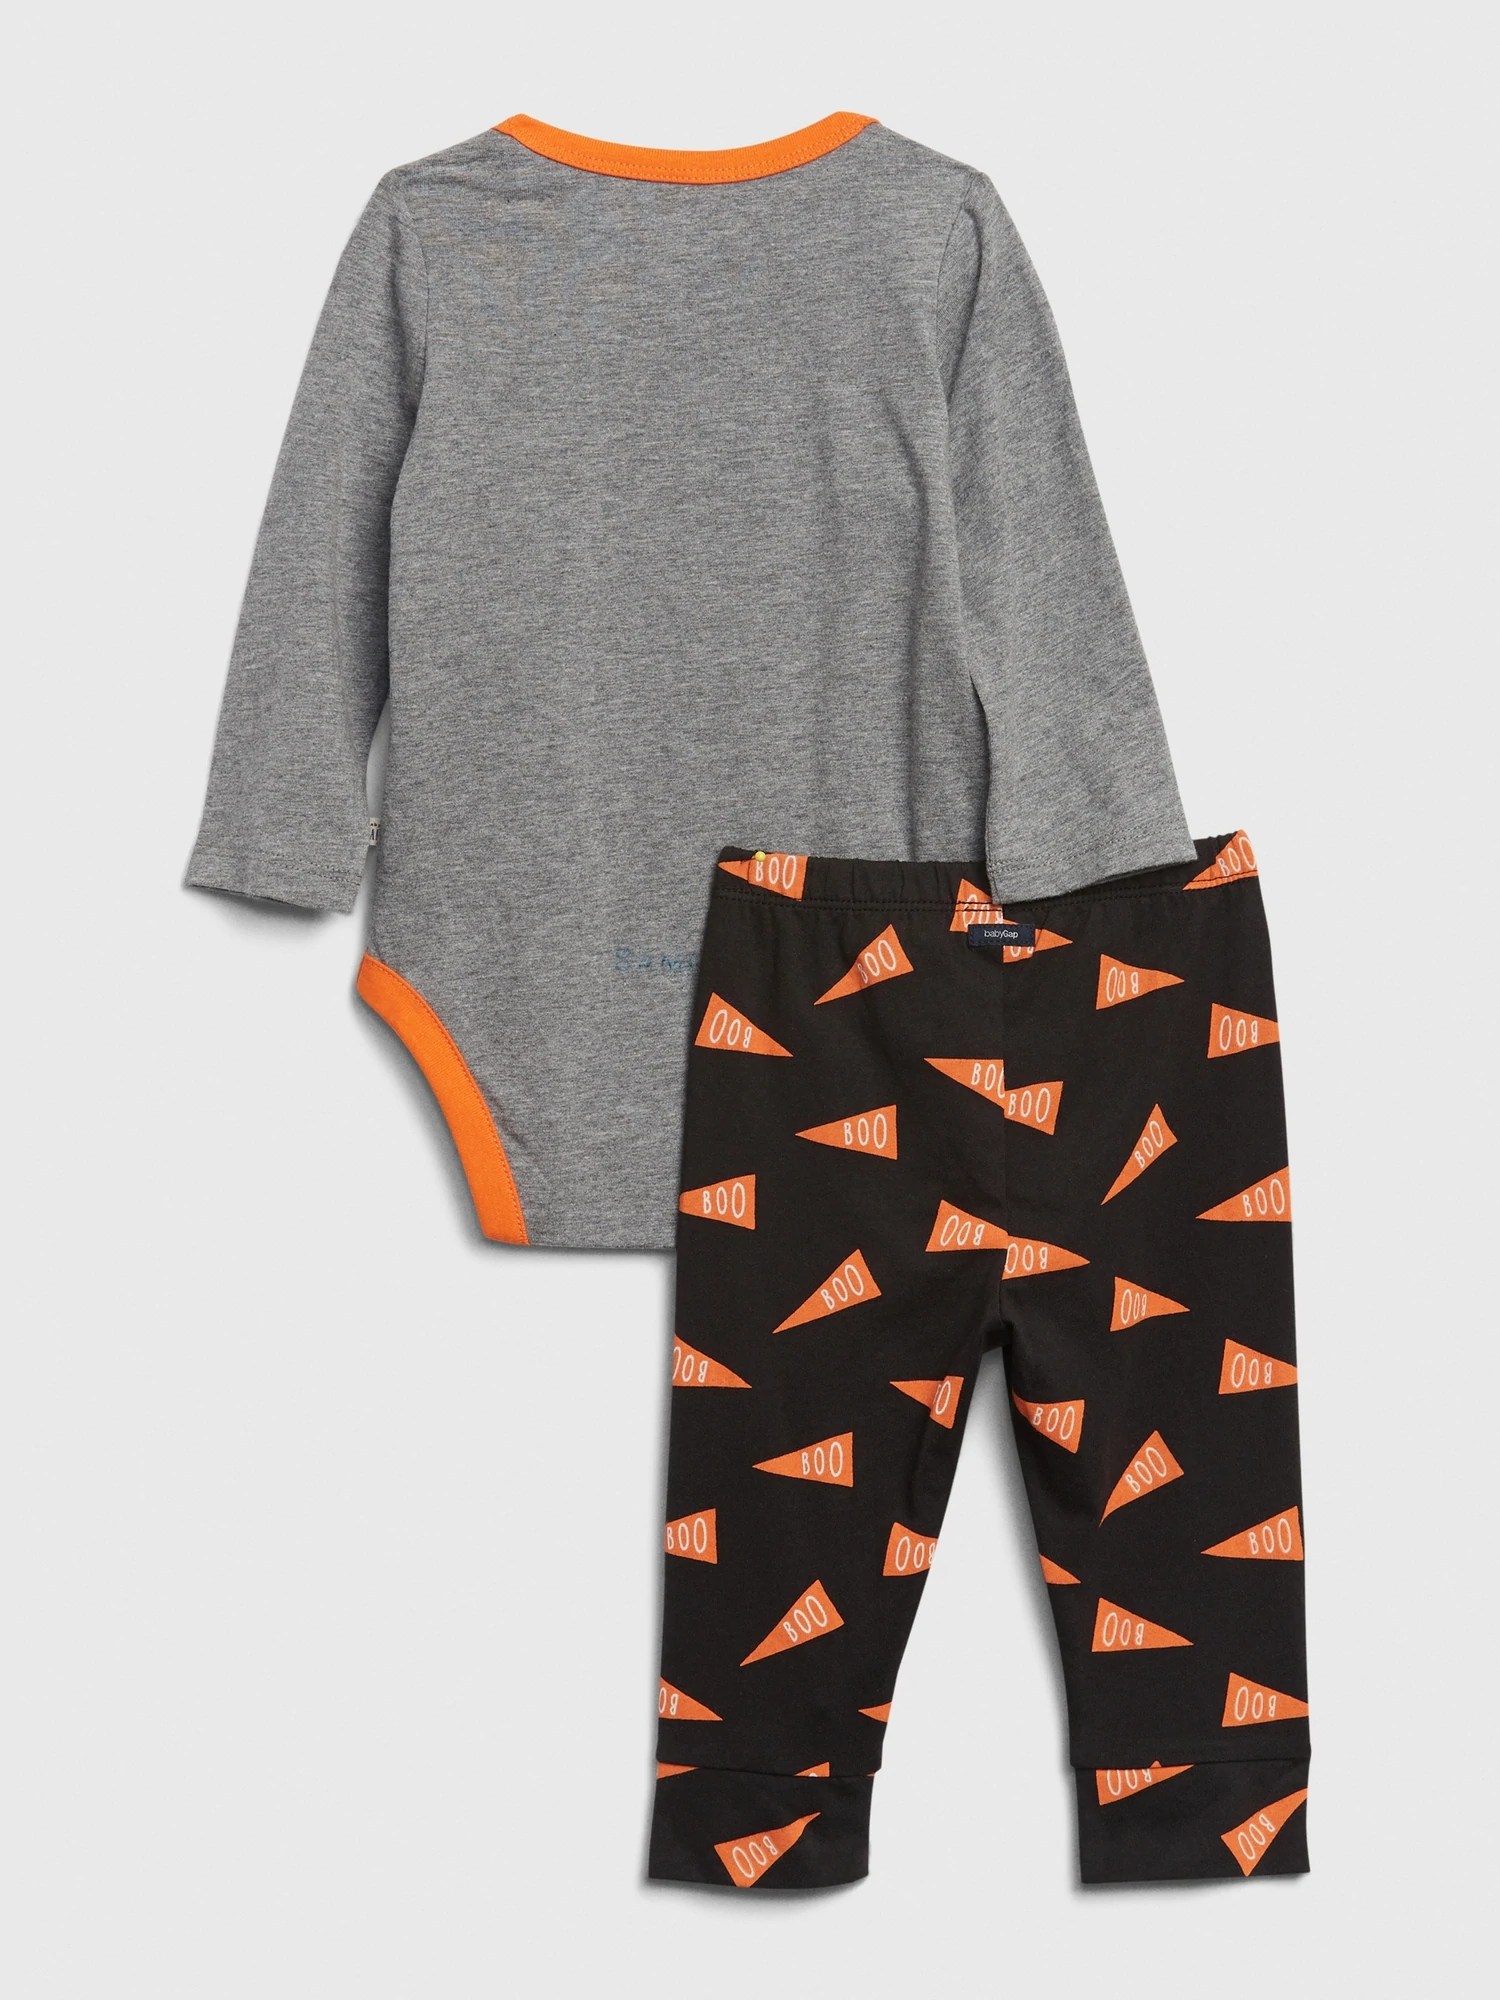 Baby body a tepláky mix and match long sleeve graphic outfit set (2)